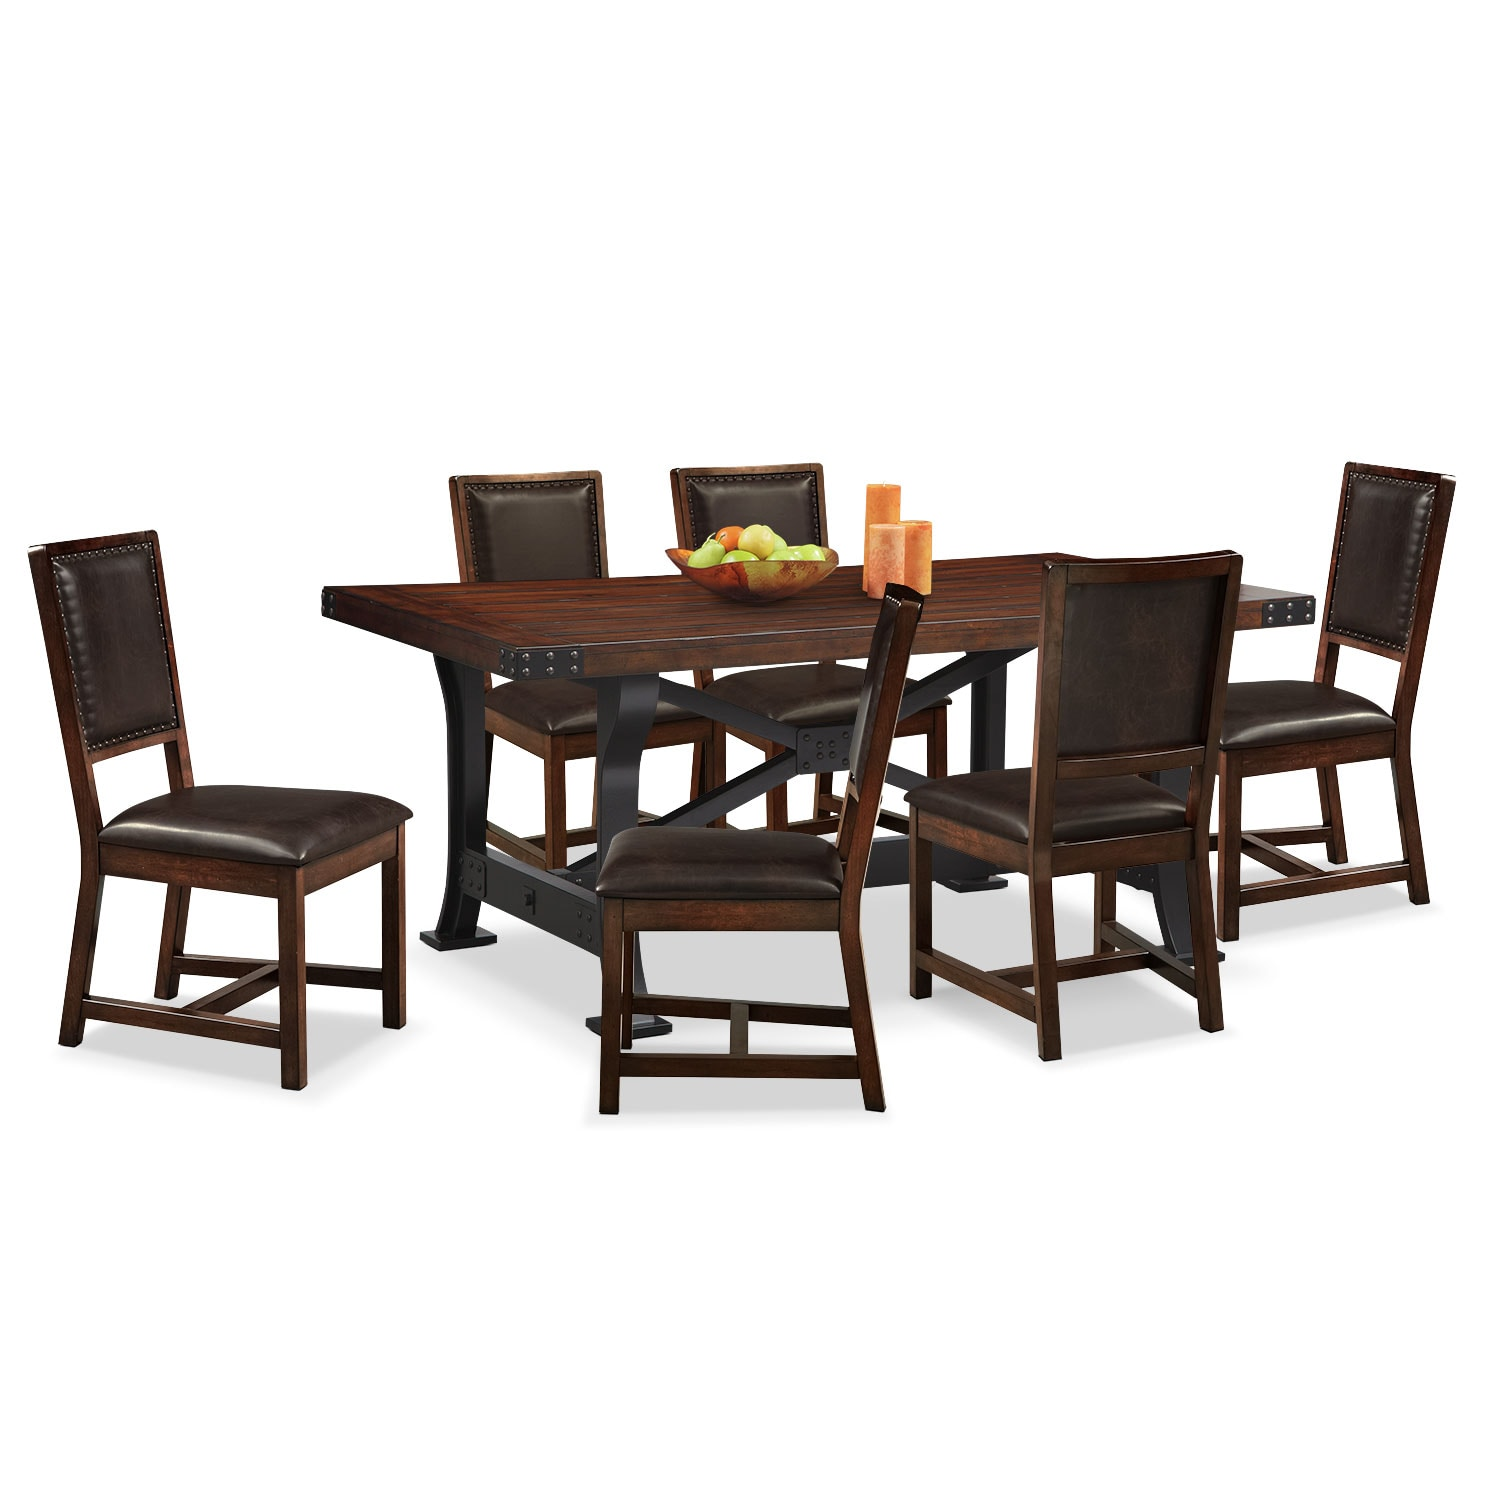 American Signature Dining Room: Newcastle Table And 6 Chairs - Mahogany